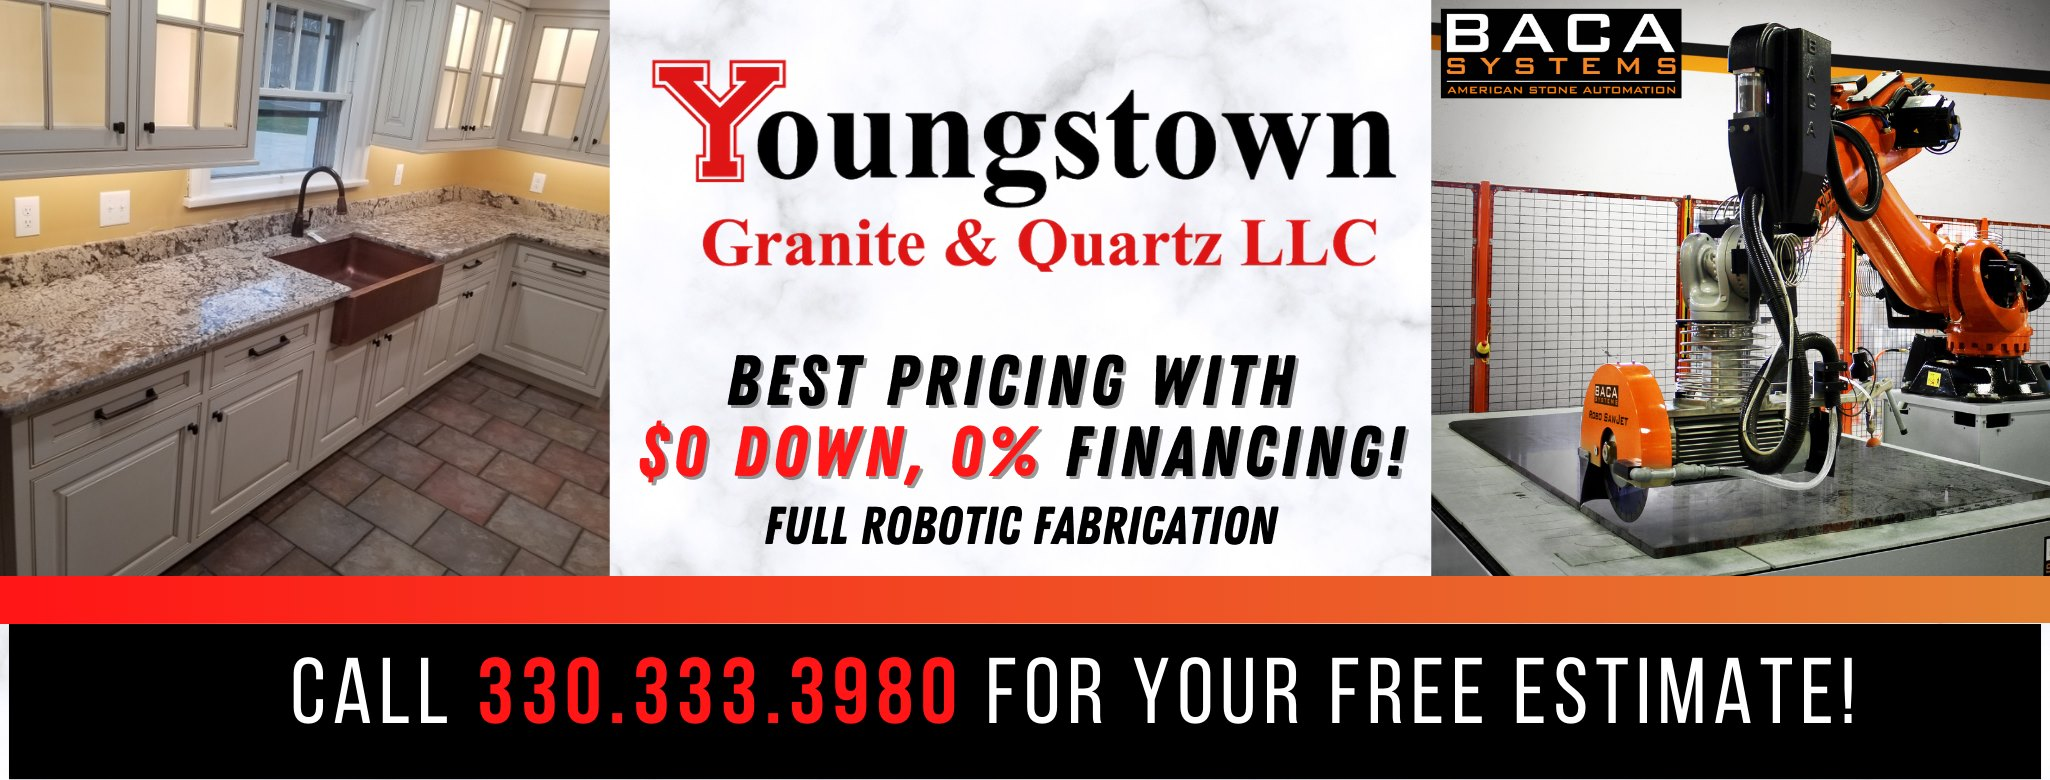 Youngstown Granite and Quartz LLC